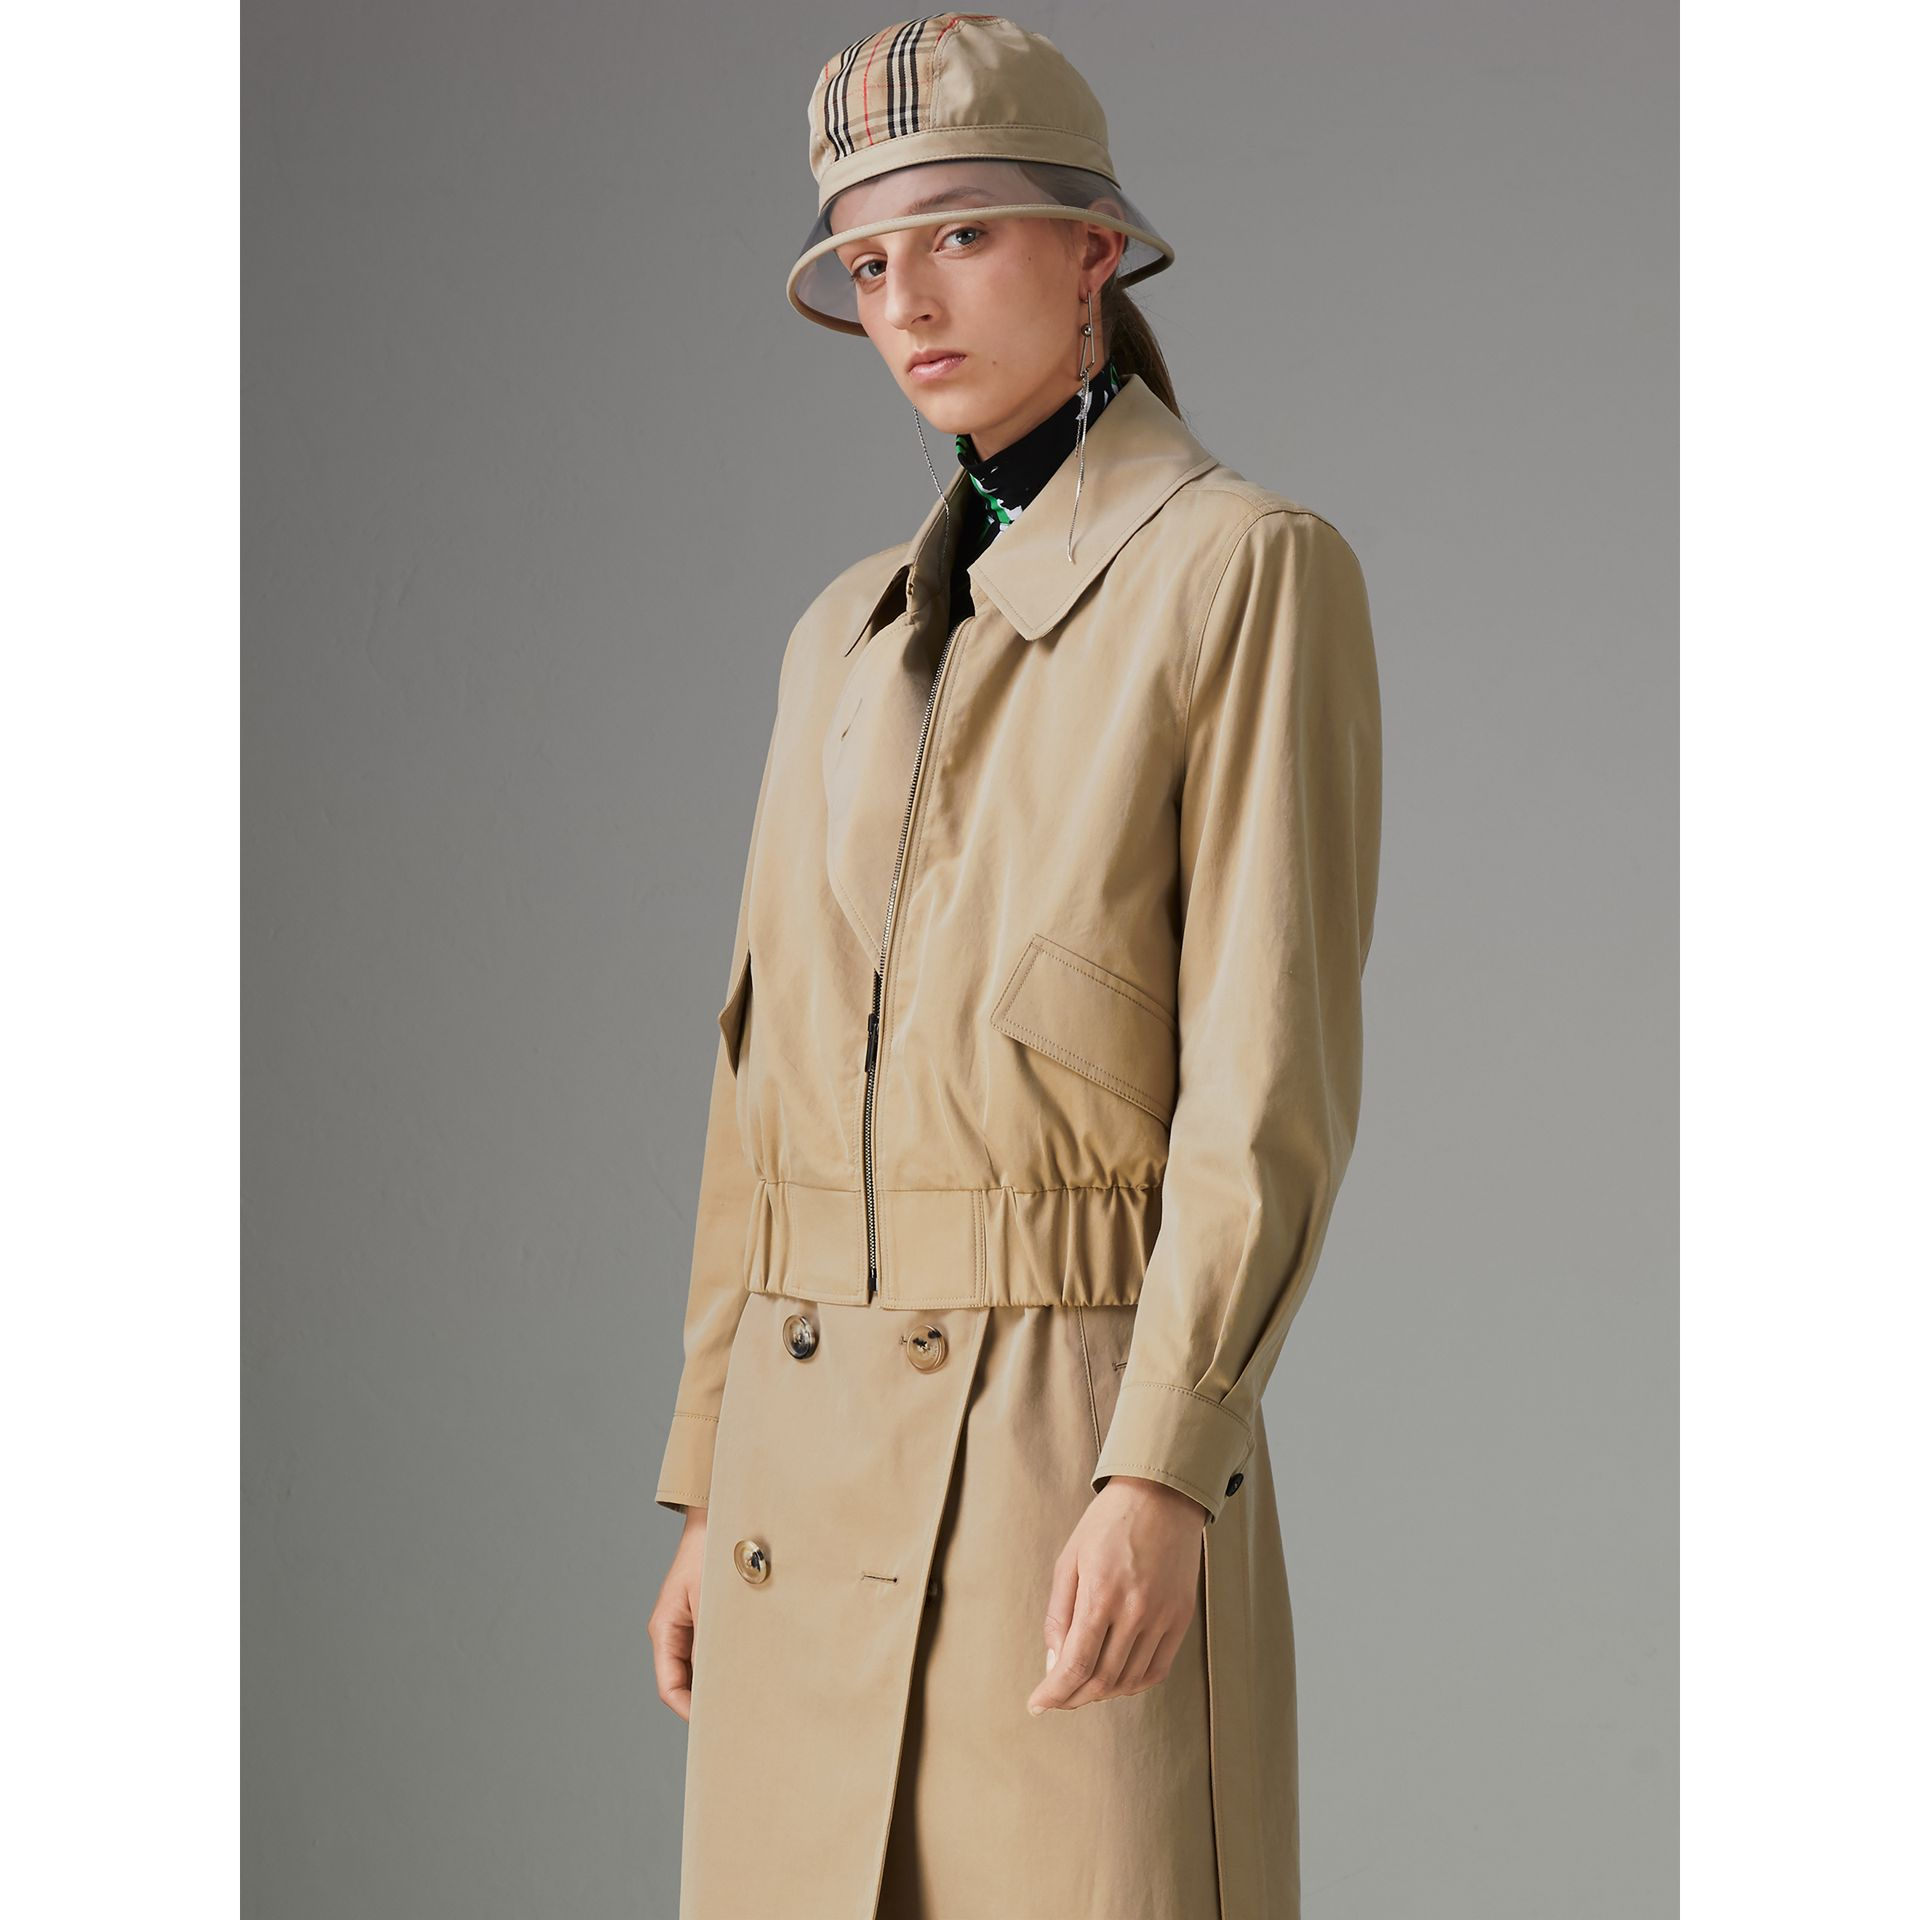 Trench coat Harrington ricostruito in gabardine tropicale (Miele) - Donna | Burberry - immagine della galleria 1